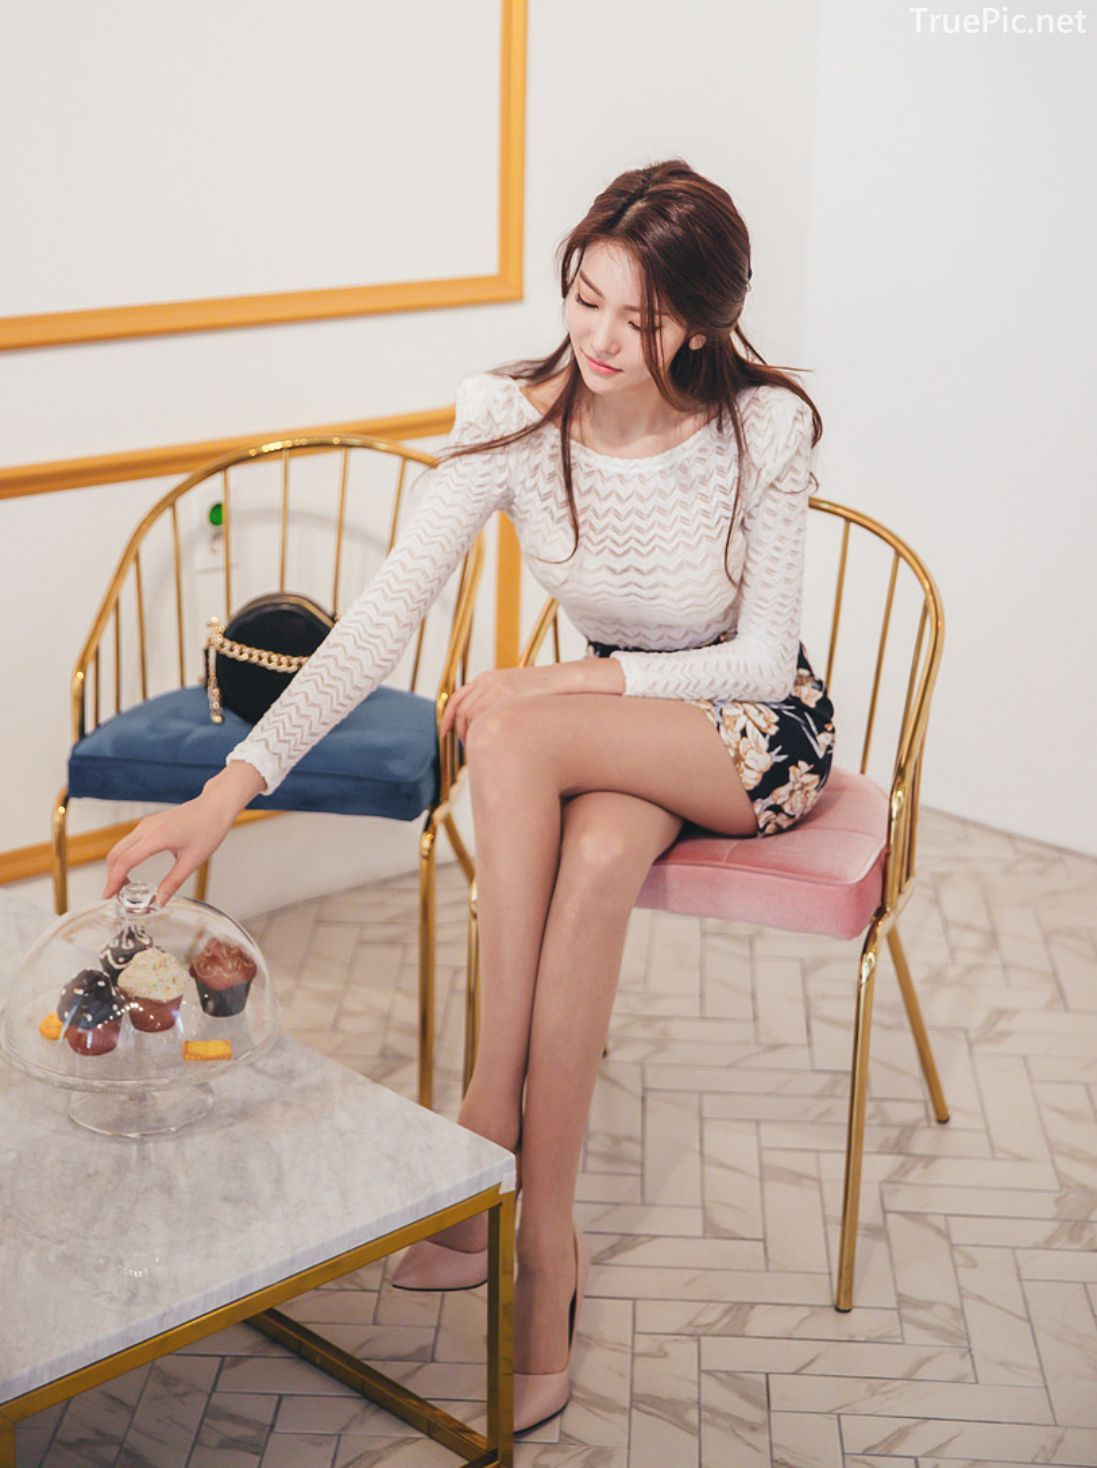 Park Jung Yoon - Korean Fashion Model - Casual Indoor Photoshoot - TruePic.net - Picture 10